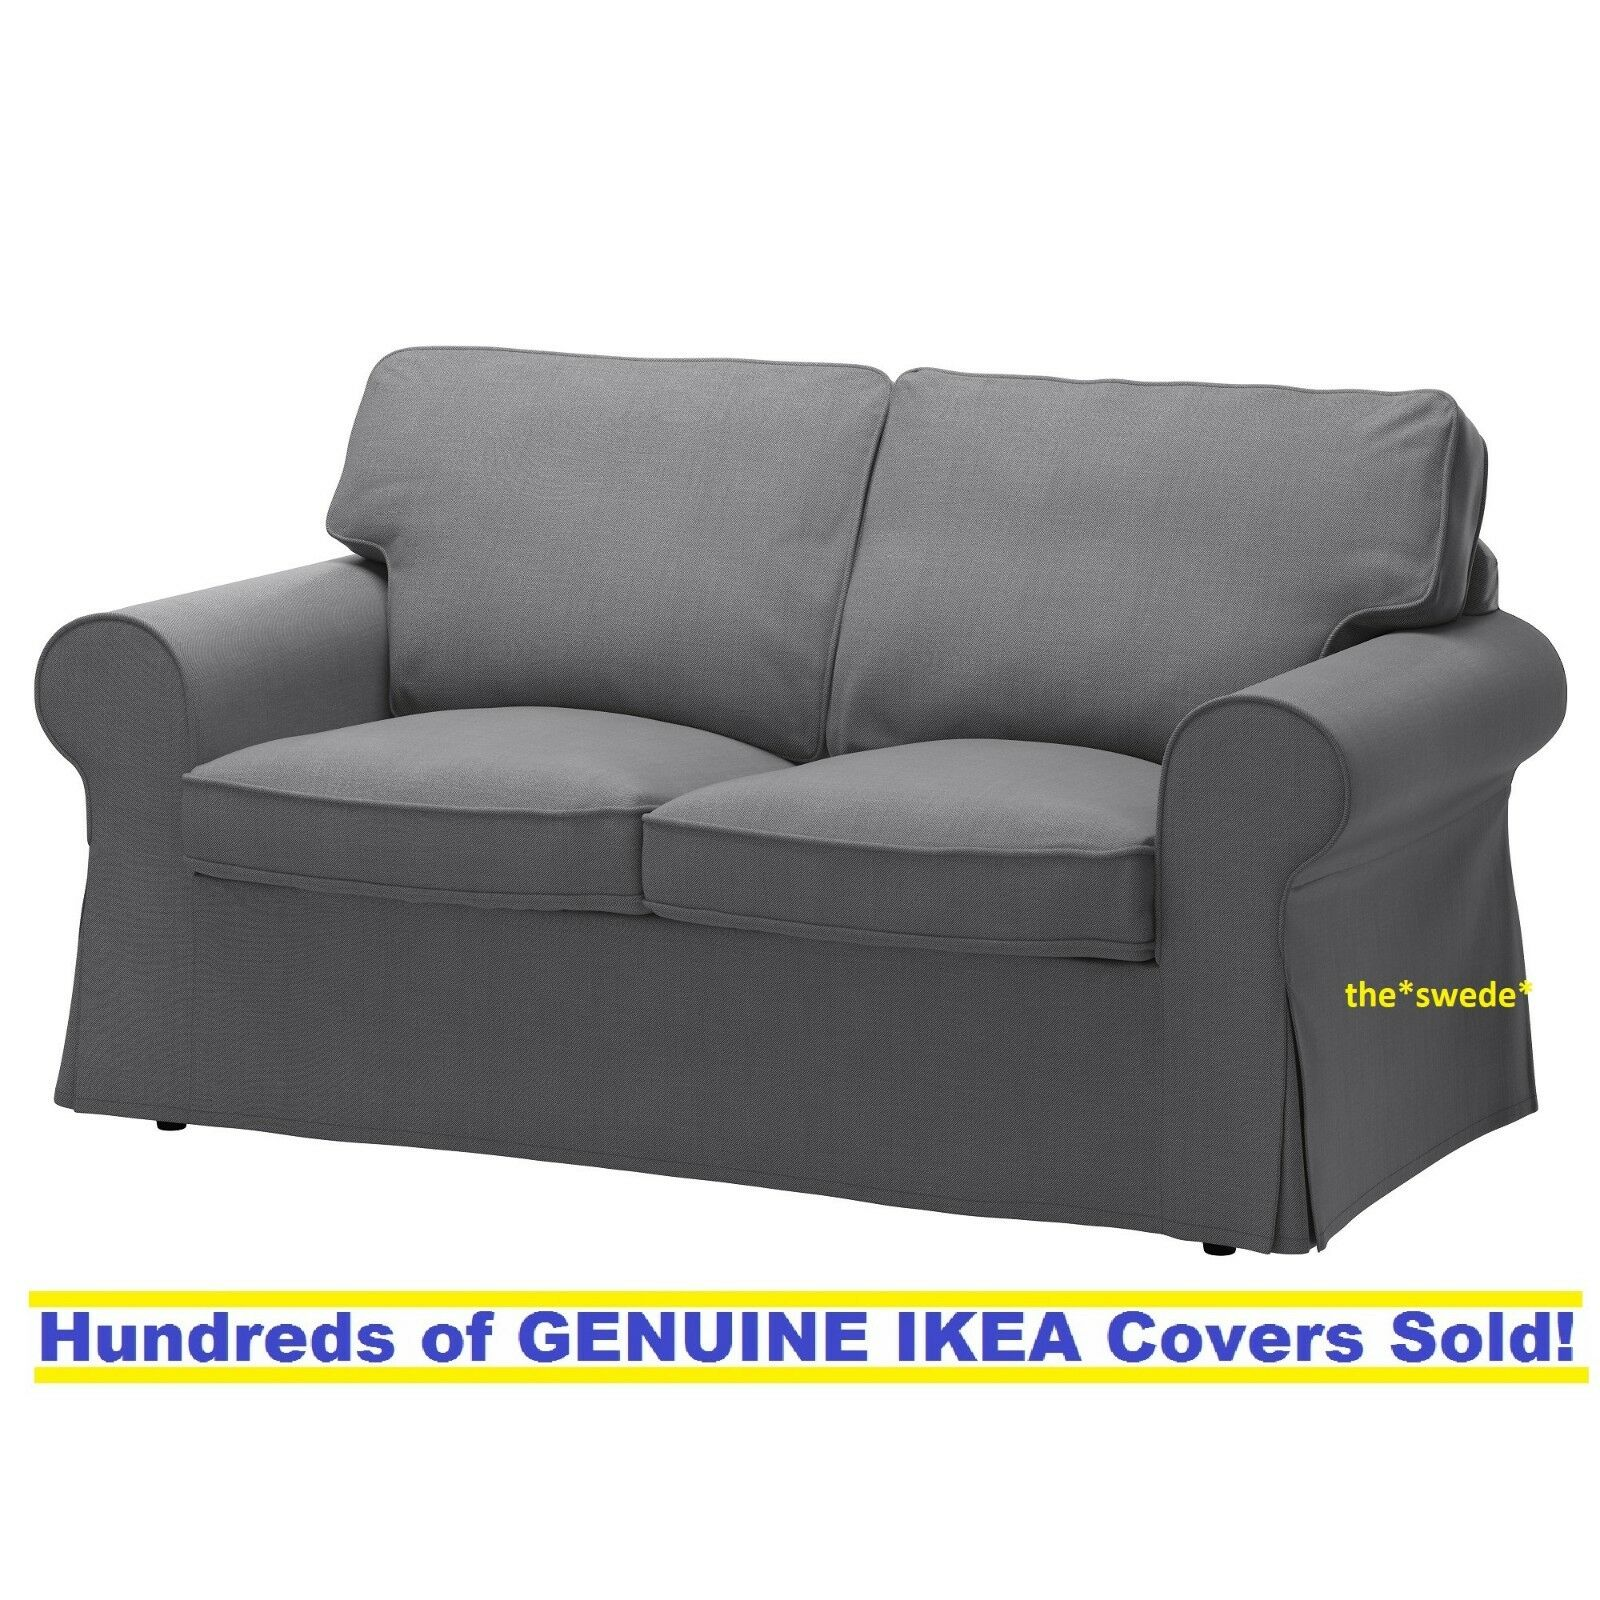 t awesome furniture chair oversized for shaped full cushion size couch slipcovers sure grey navy love fit covers of loveseat sofas sofa large slipcover sectional surefit club